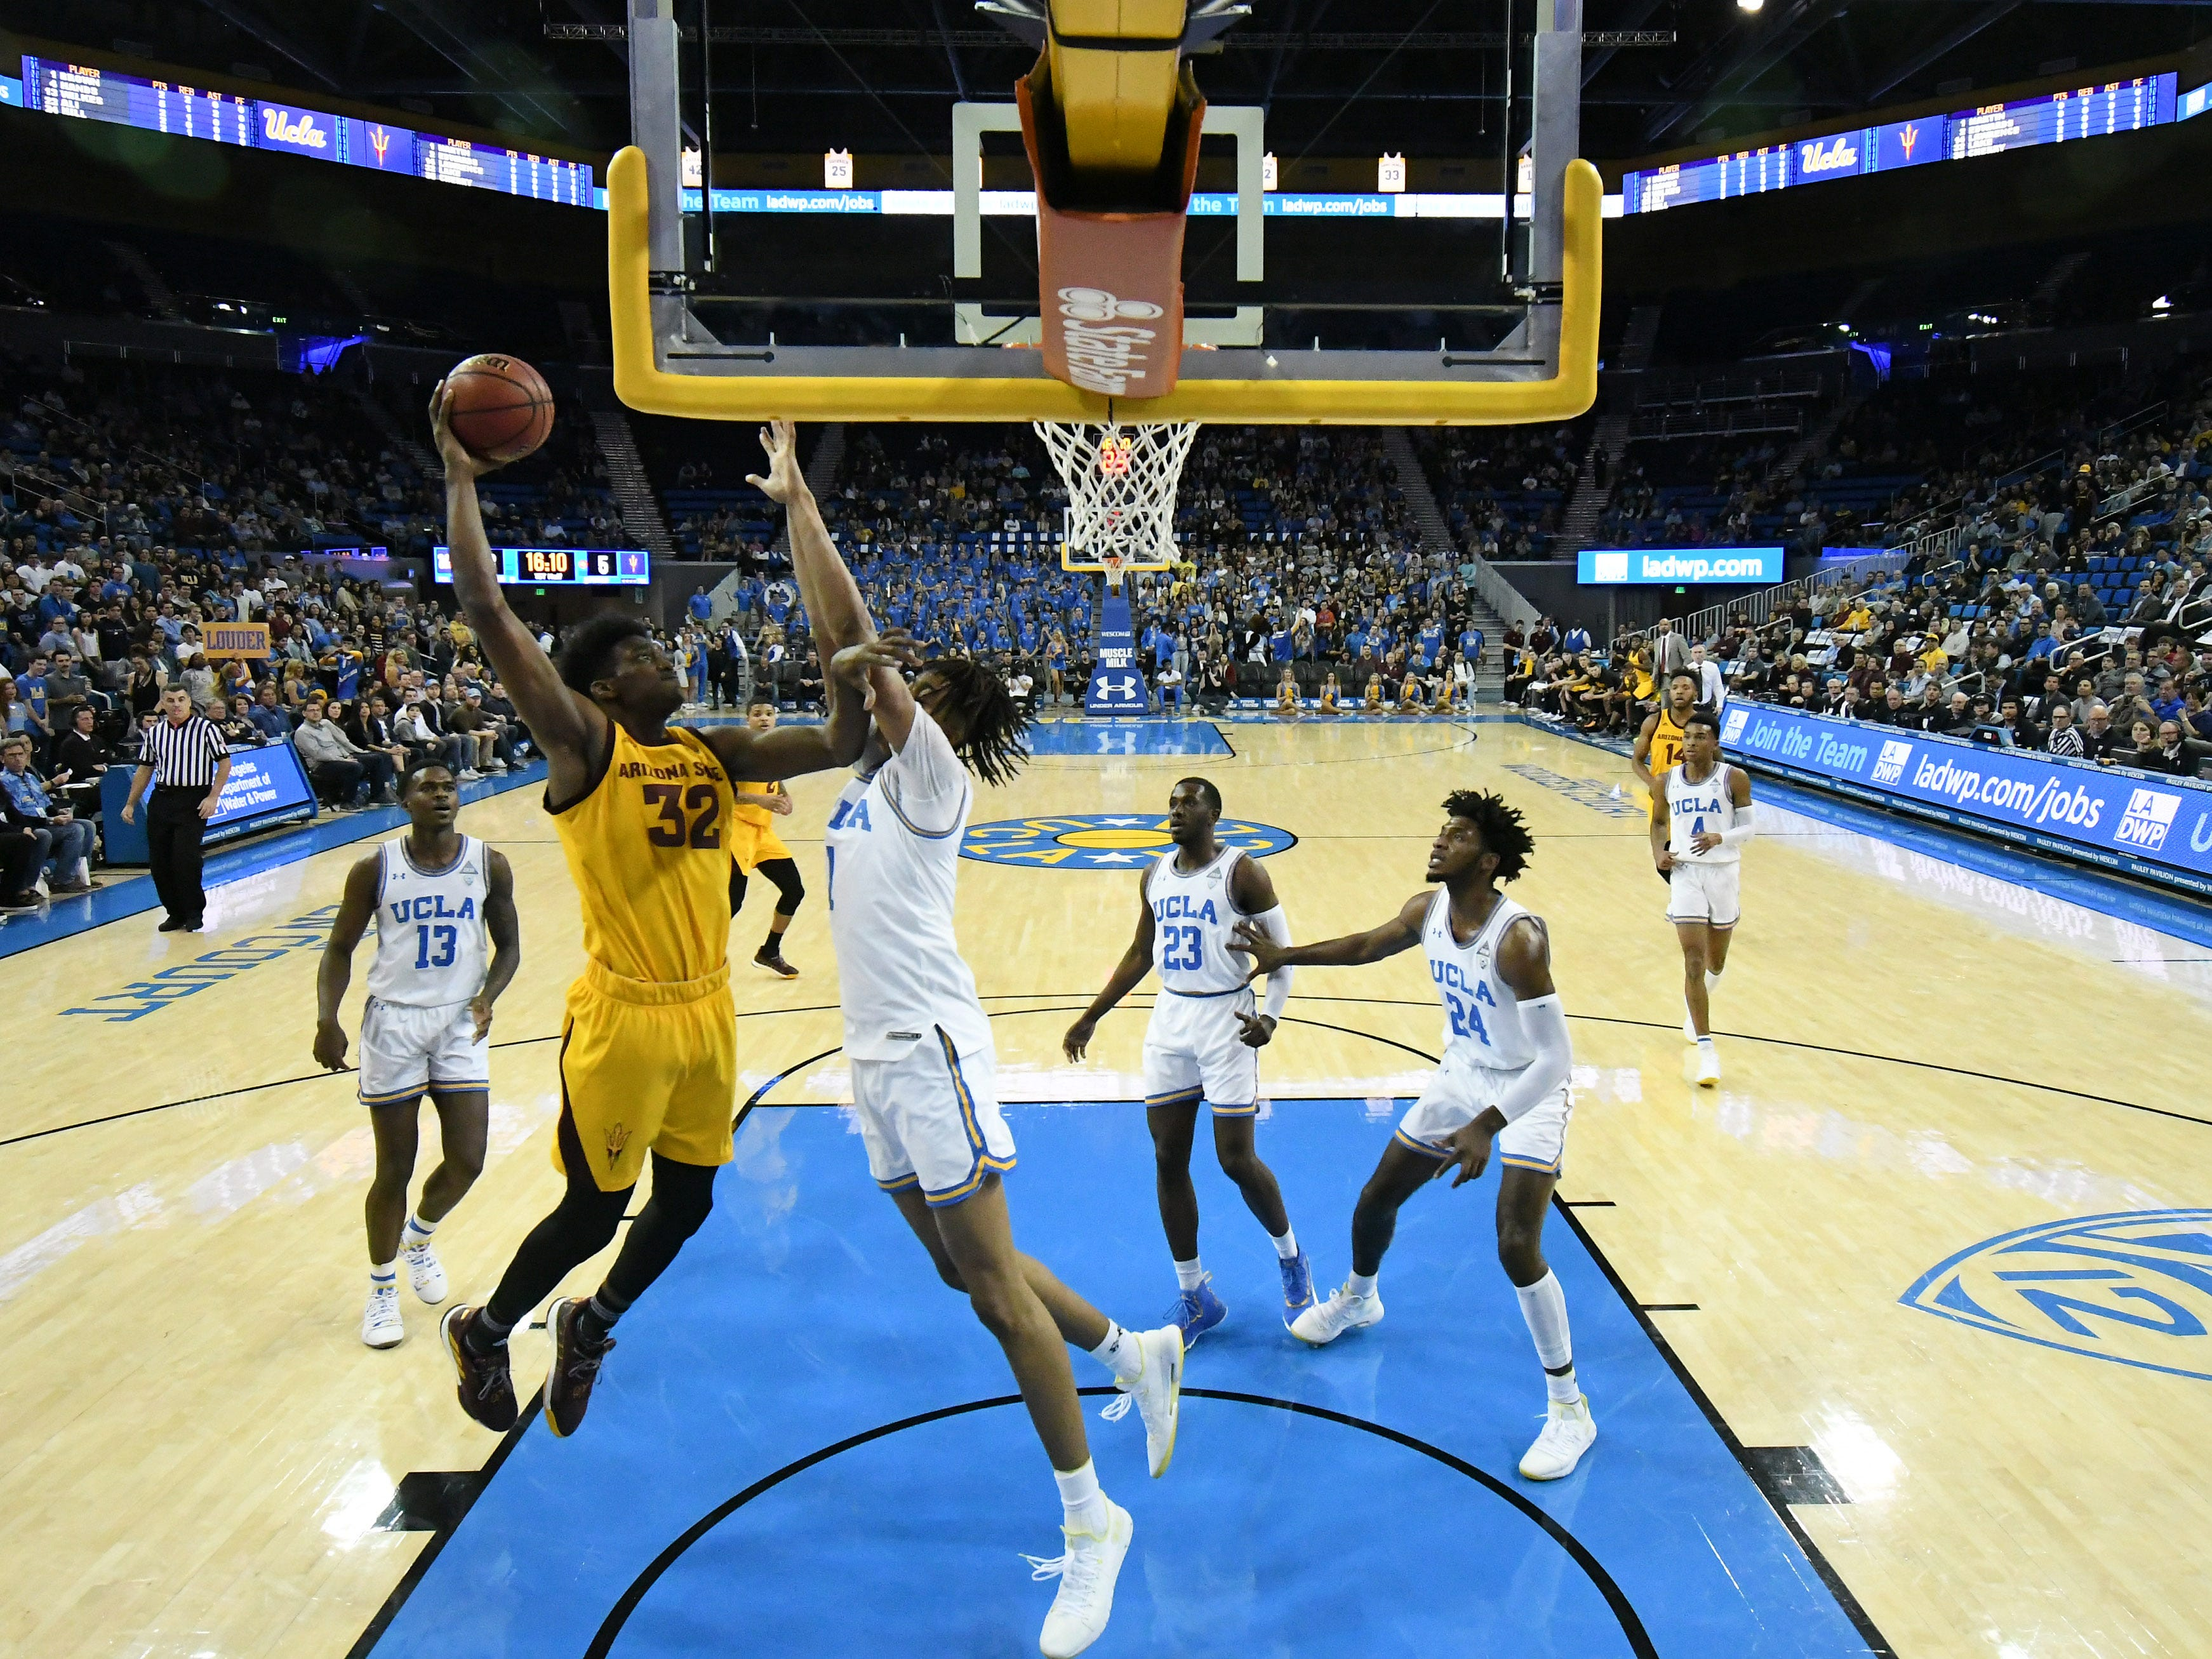 Jan 24, 2019; Los Angeles, CA, USA; Arizona State Sun Devils forward De'Quon Lake (32) dunks against UCLA Bruins center Moses Brown (1) during the first half at Pauley Pavilion. Mandatory Credit: Richard Mackson-USA TODAY Sports